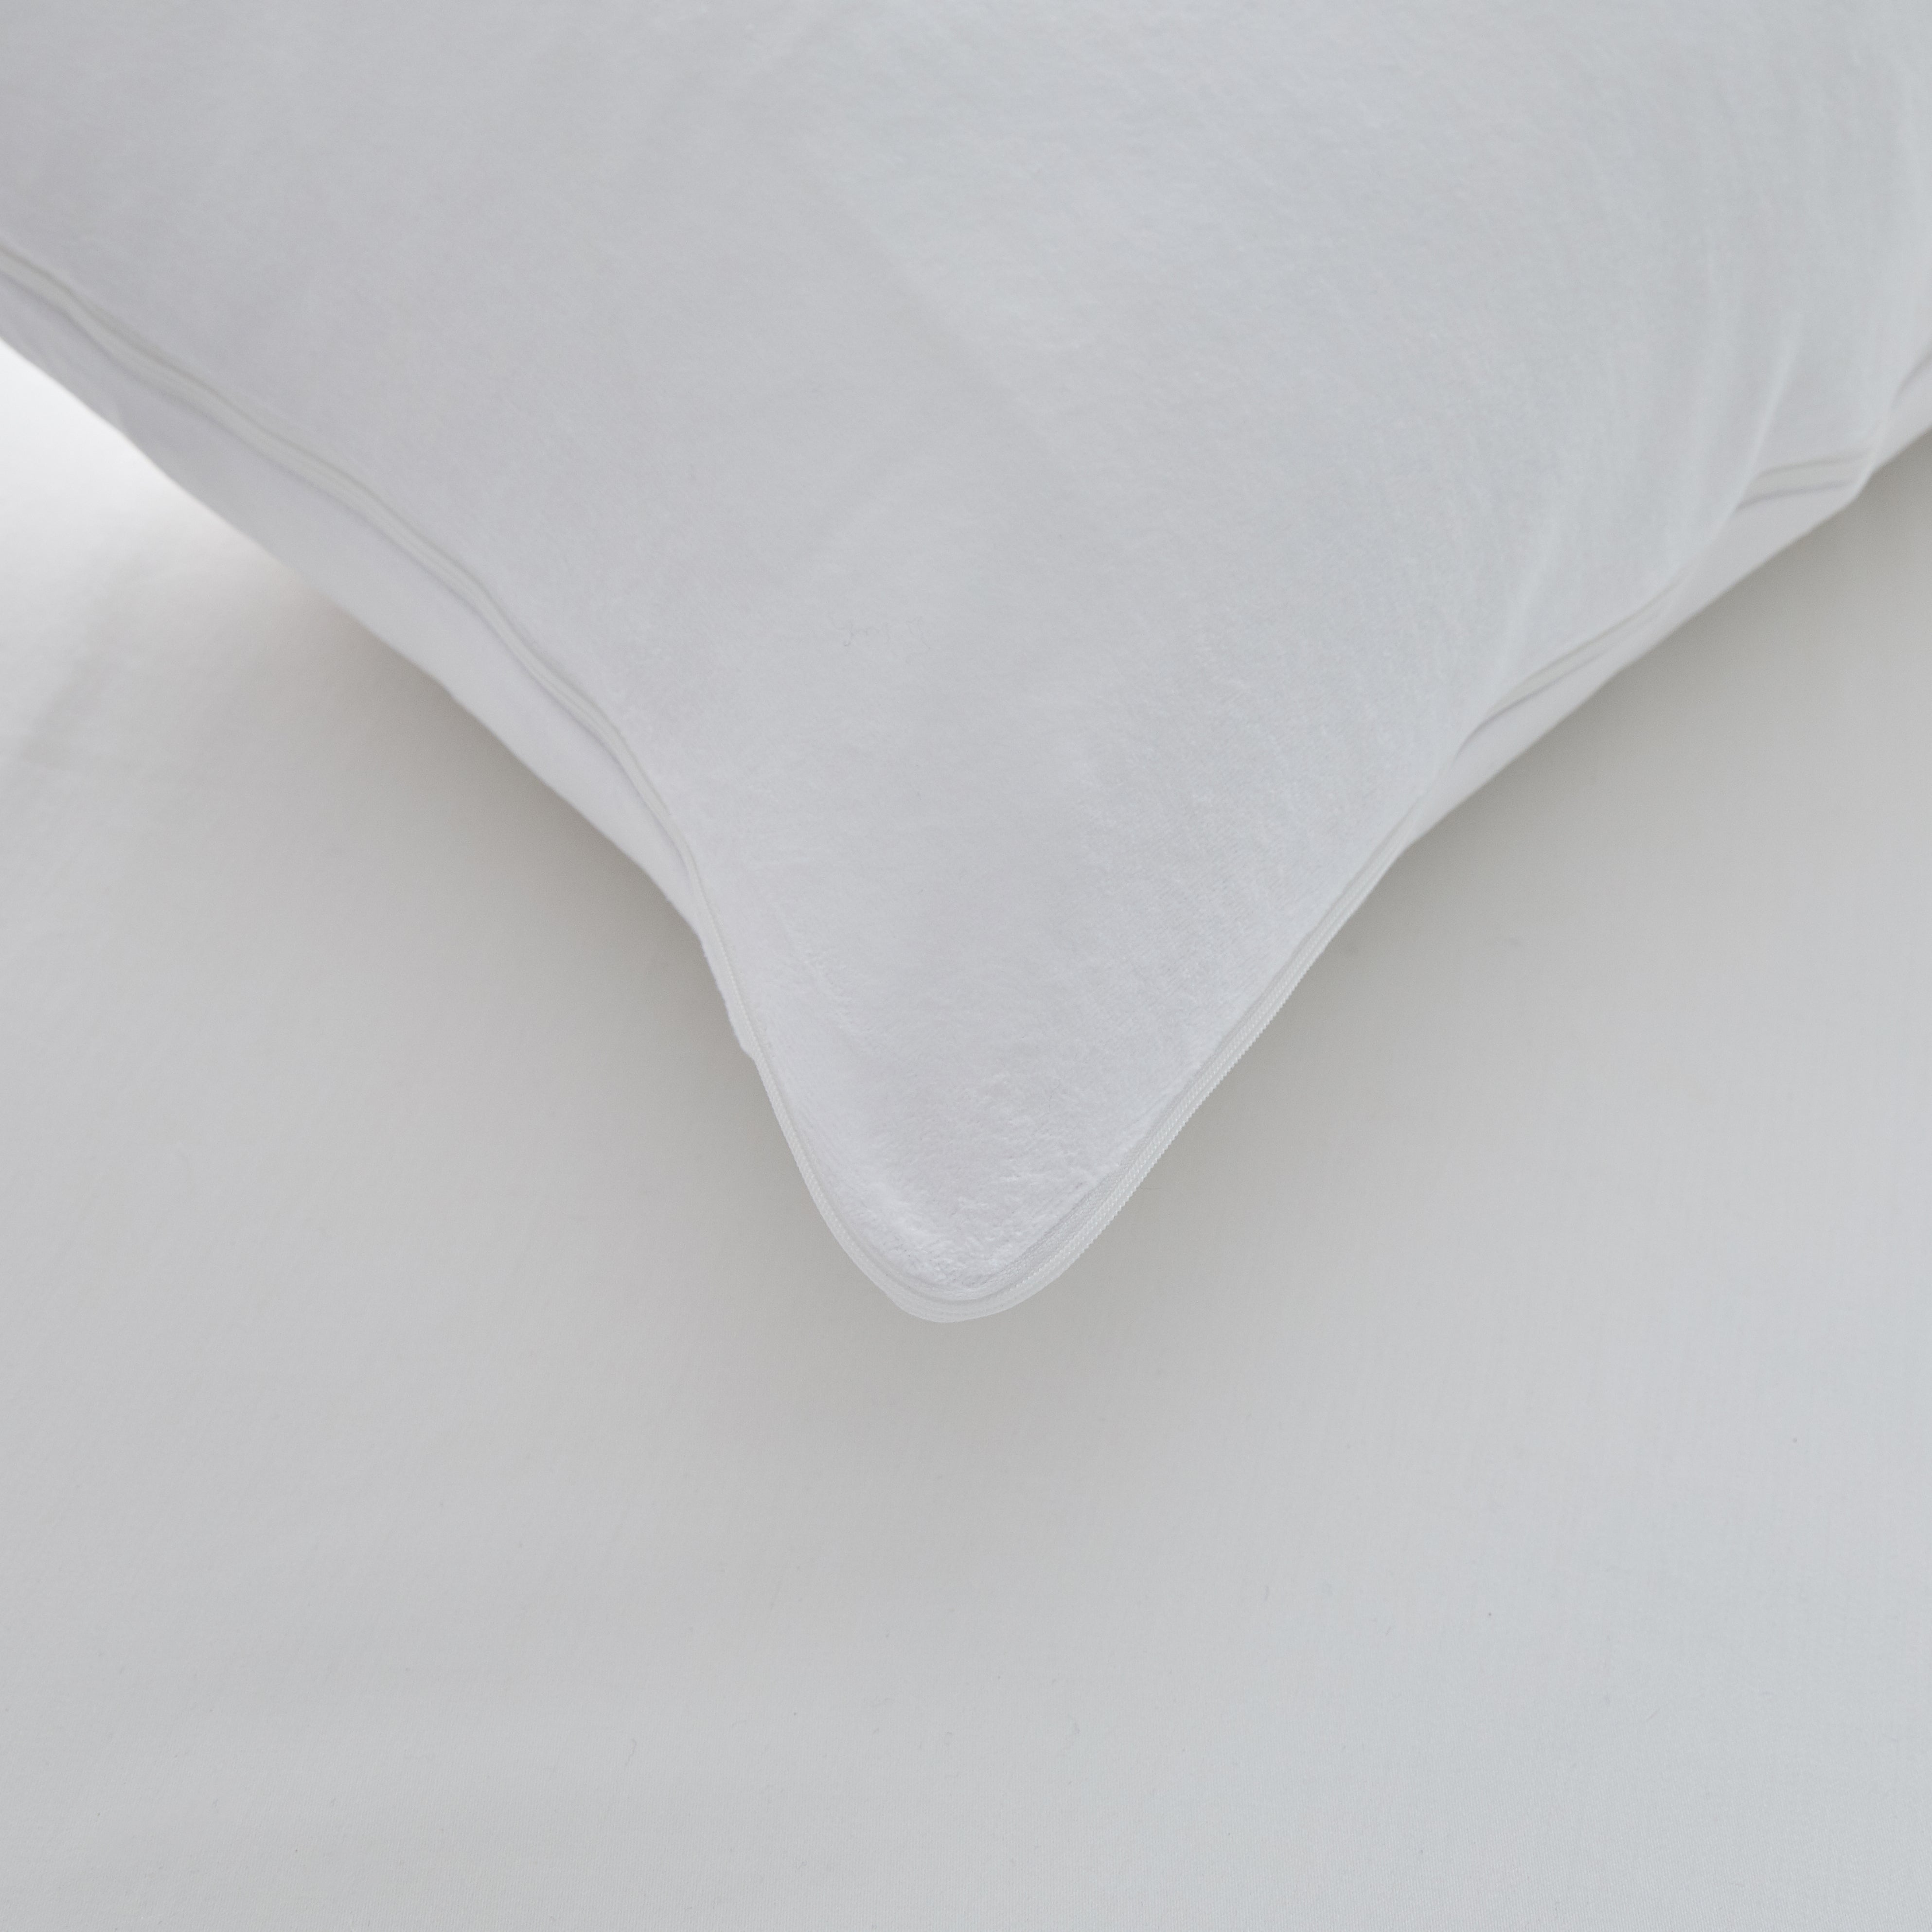 Contoured Memory Foam Pillowcase